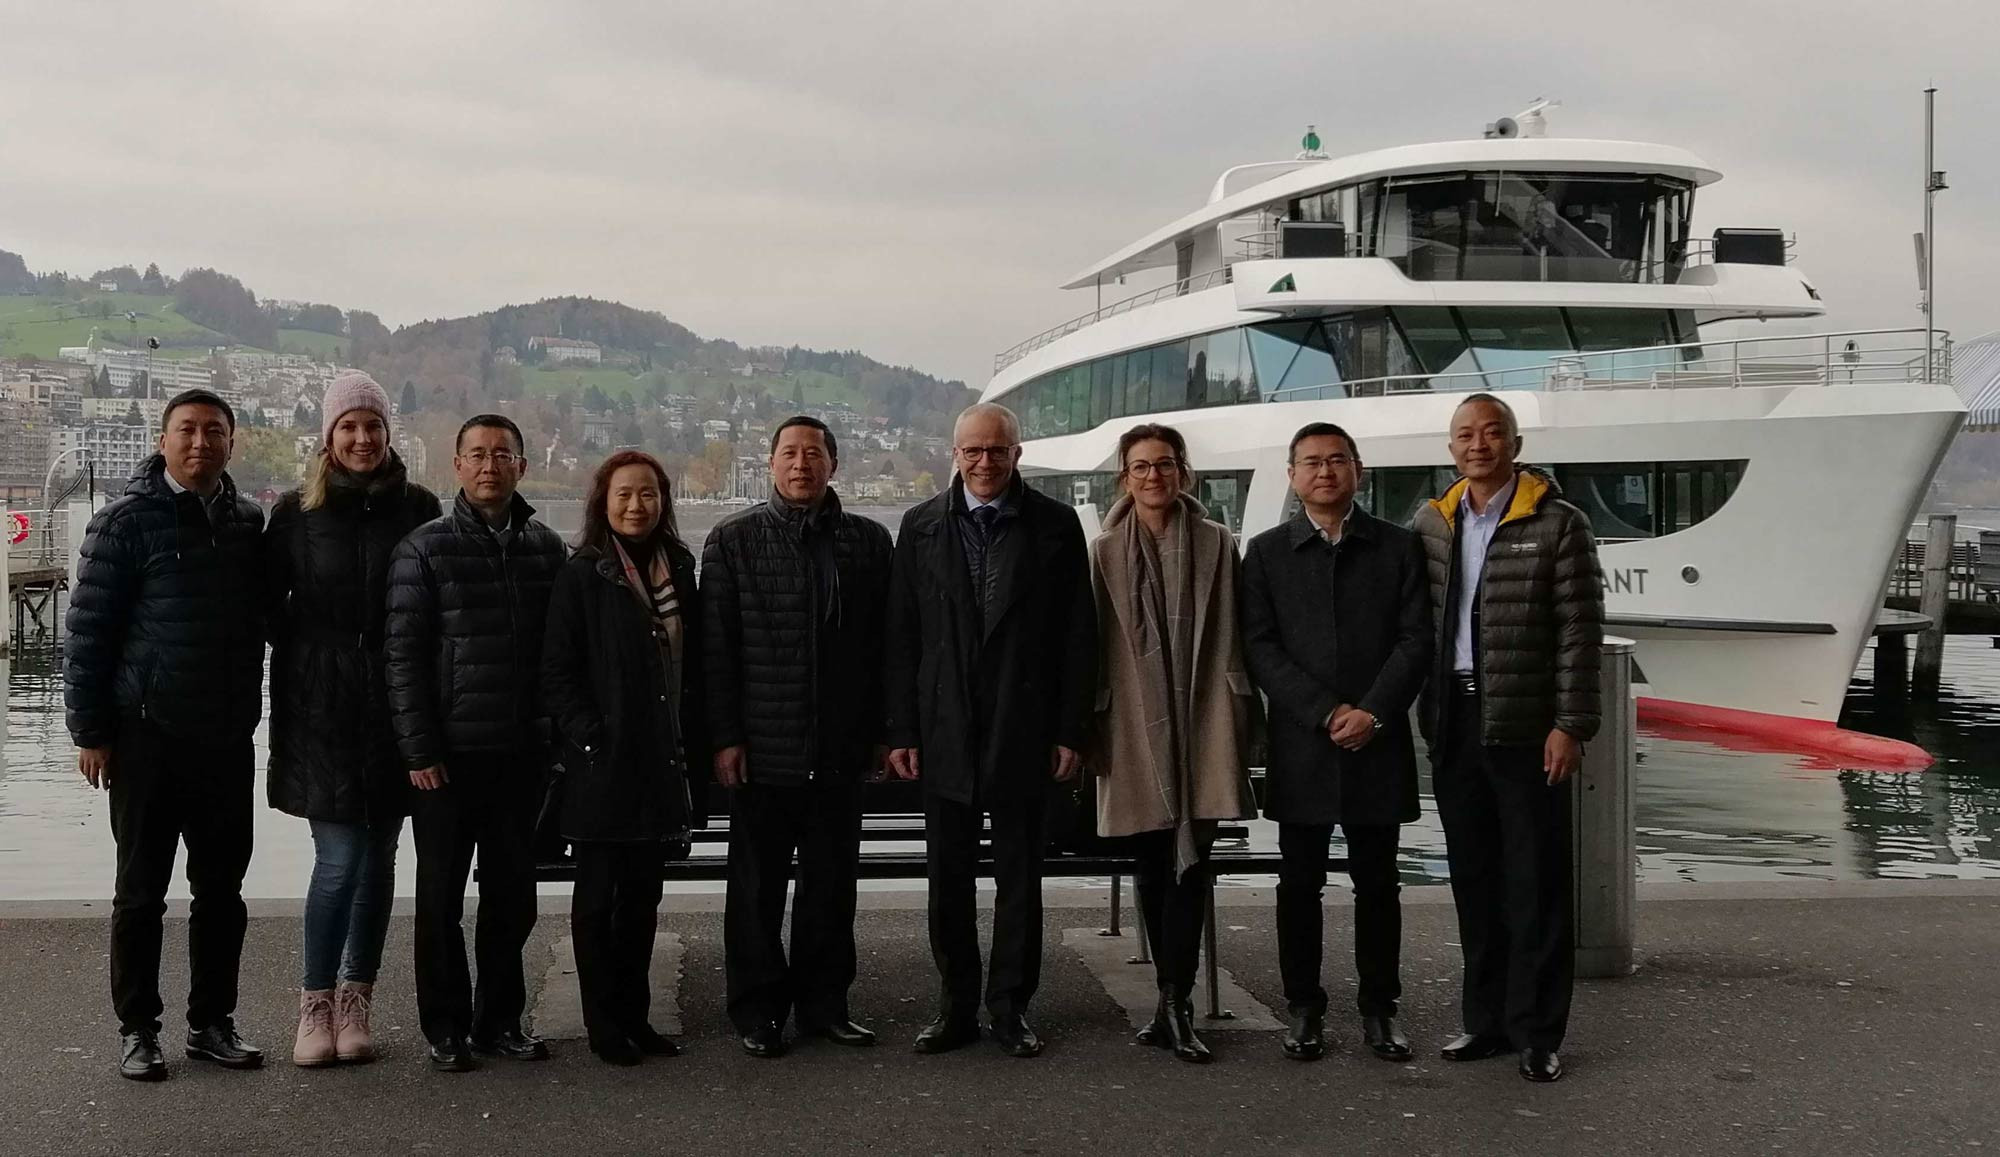 Lucerne 2021 representatives host Chengdu 2021 organisers, including a visit to the Winter Universiade Park area along the downtown banks of Lake Lucerne ©FISU